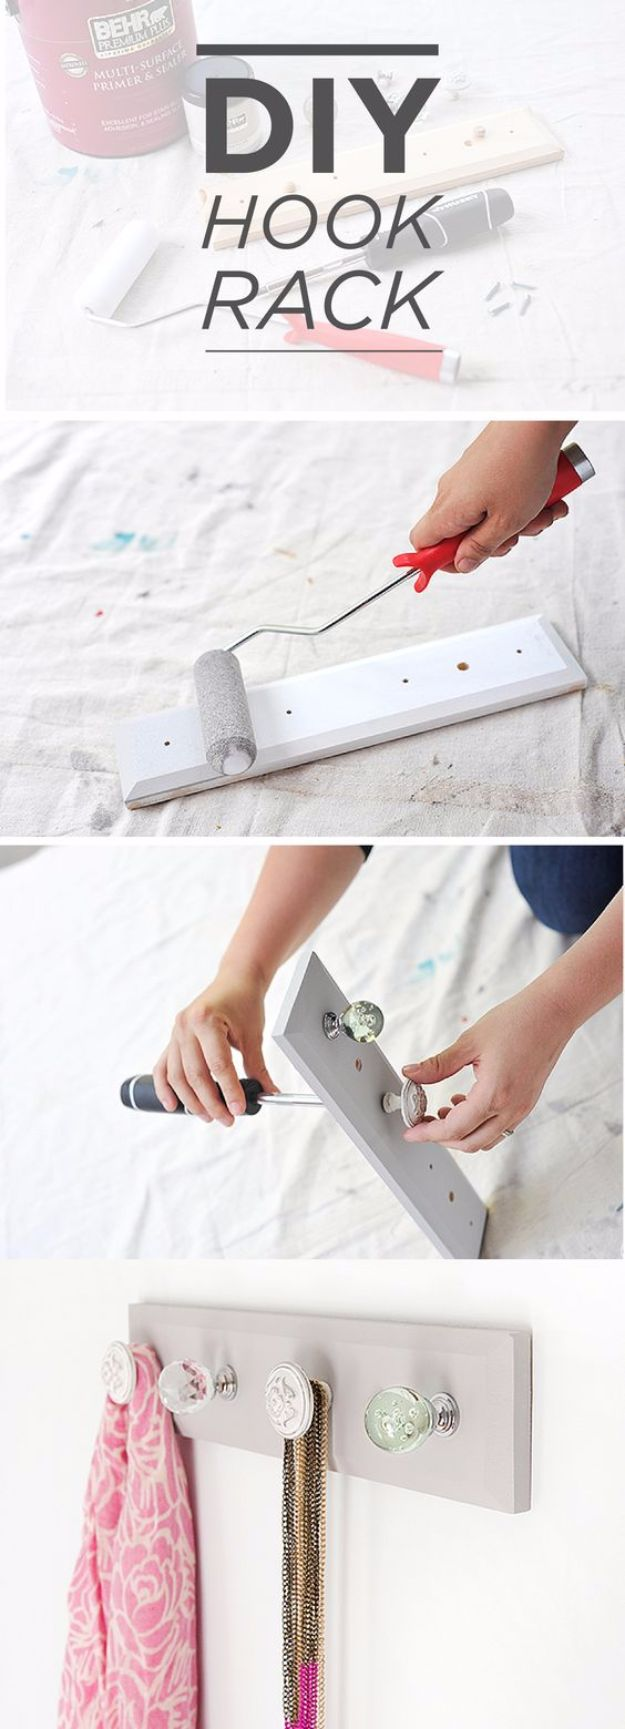 Best DIY Room Decor Ideas for Teens and Teenagers - DIY Hook Rack - Best Cool Crafts, Bedroom Accessories, Lighting, Wall Art, Creative Arts and Crafts Projects, Rugs, Pillows, Curtains, Lamps and Lights - Easy and Cheap Do It Yourself Ideas for Teen Bedrooms and Play Rooms http://diyprojectsforteens.com/diy-room-decor-ideas-teens